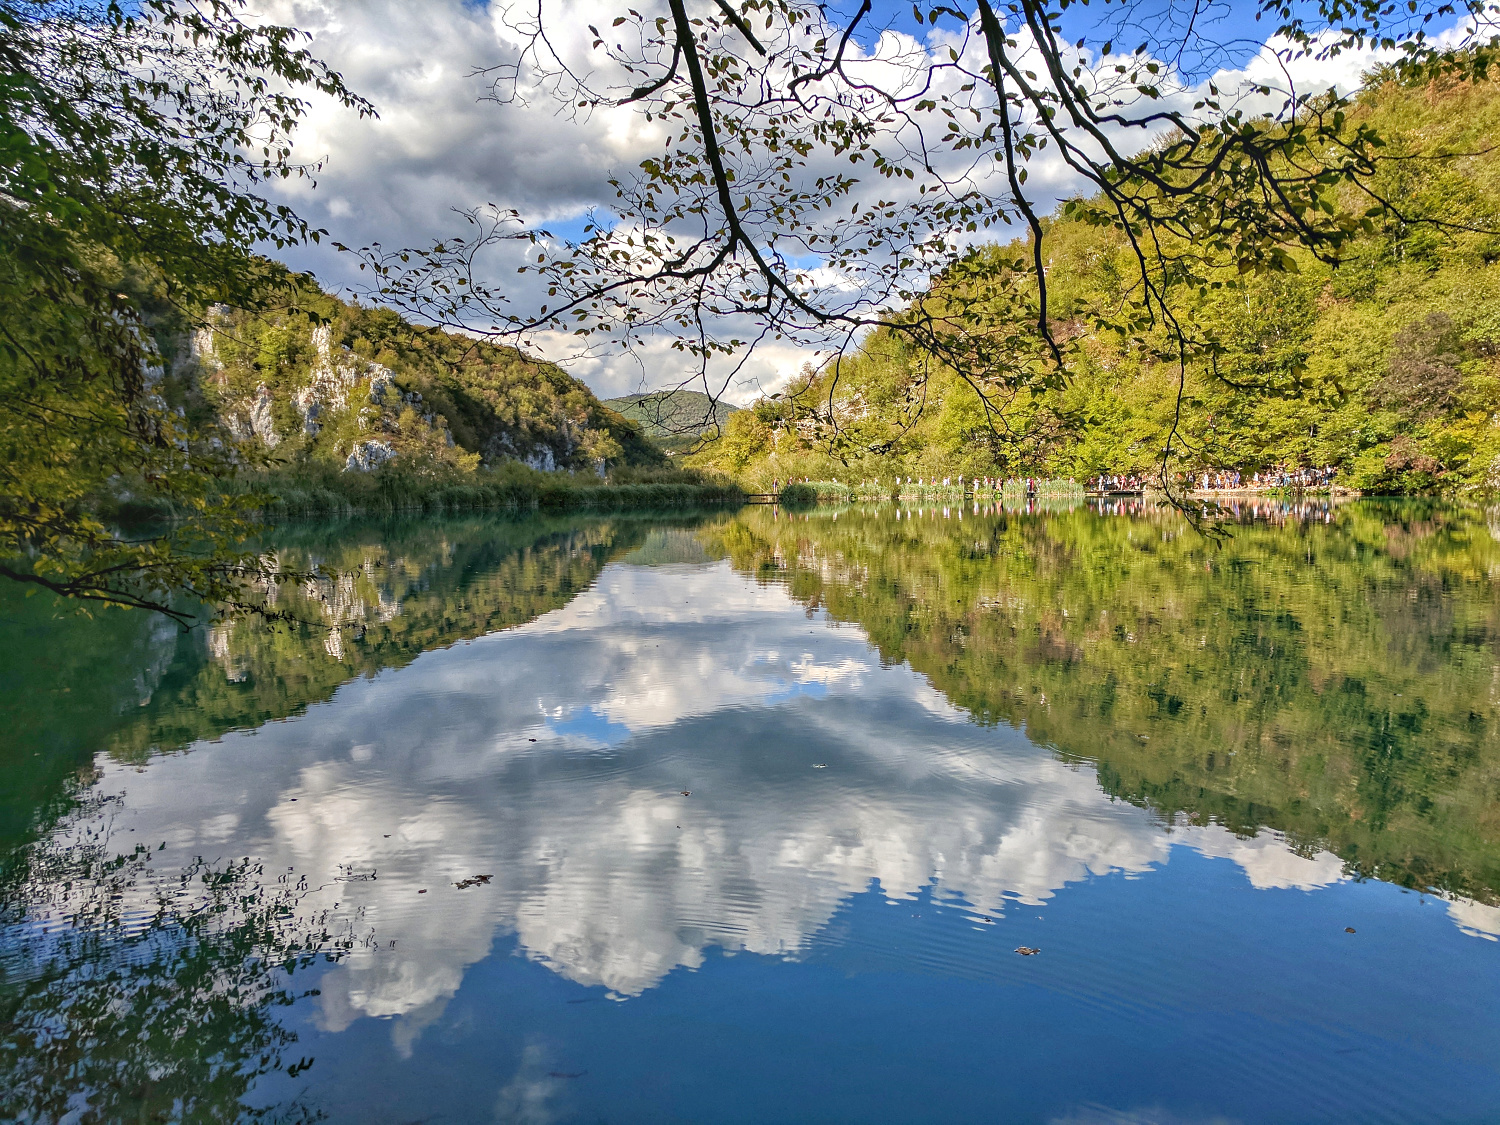 Plitvice Lakes, Europe's top natural attraction. Reflection of sky and woods at Plitvice Lakes.